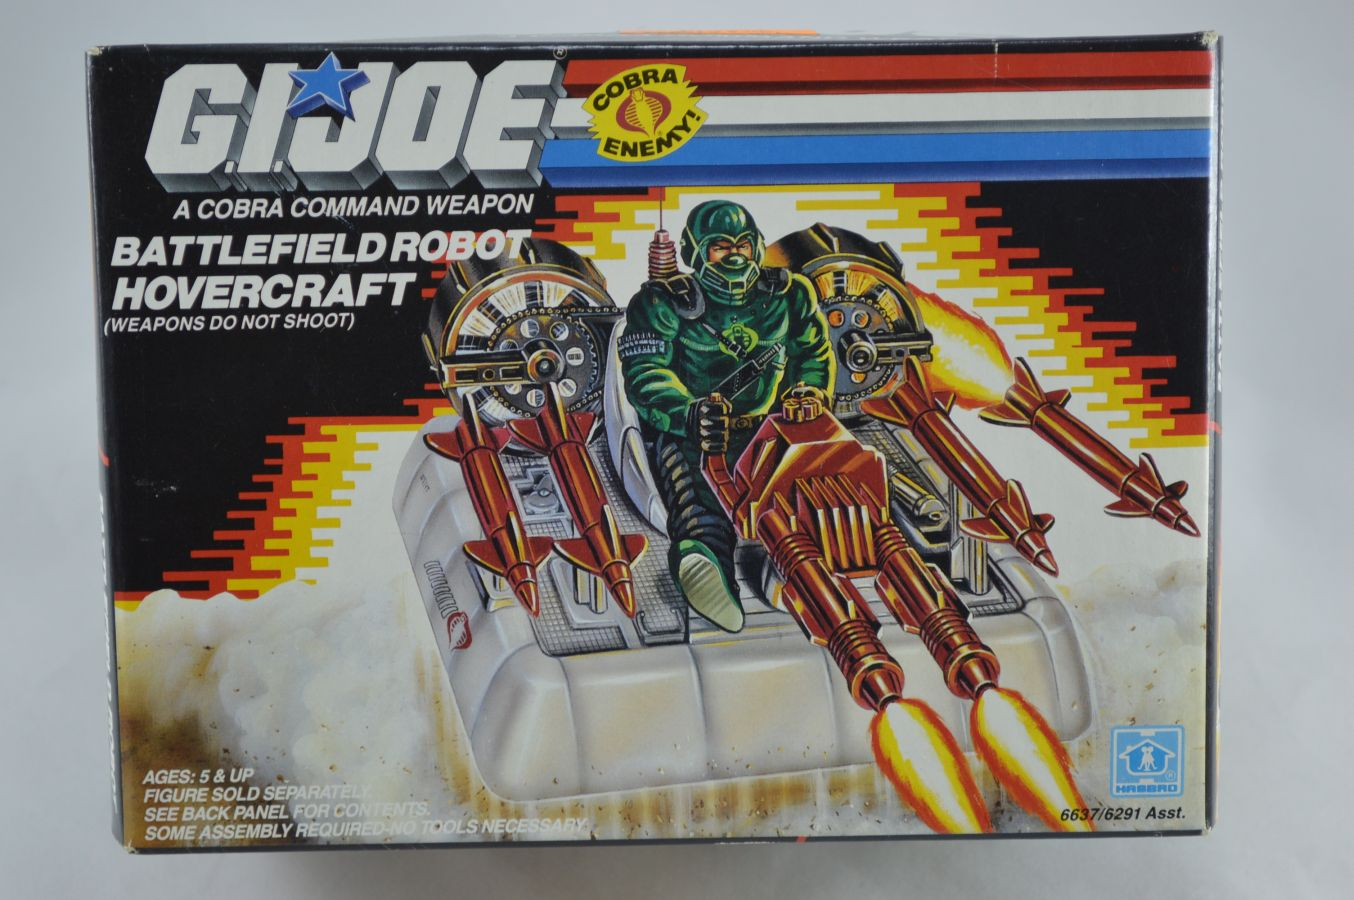 GI Joe Battlefield Robot Hovercraft Vehicle MISB Vintage